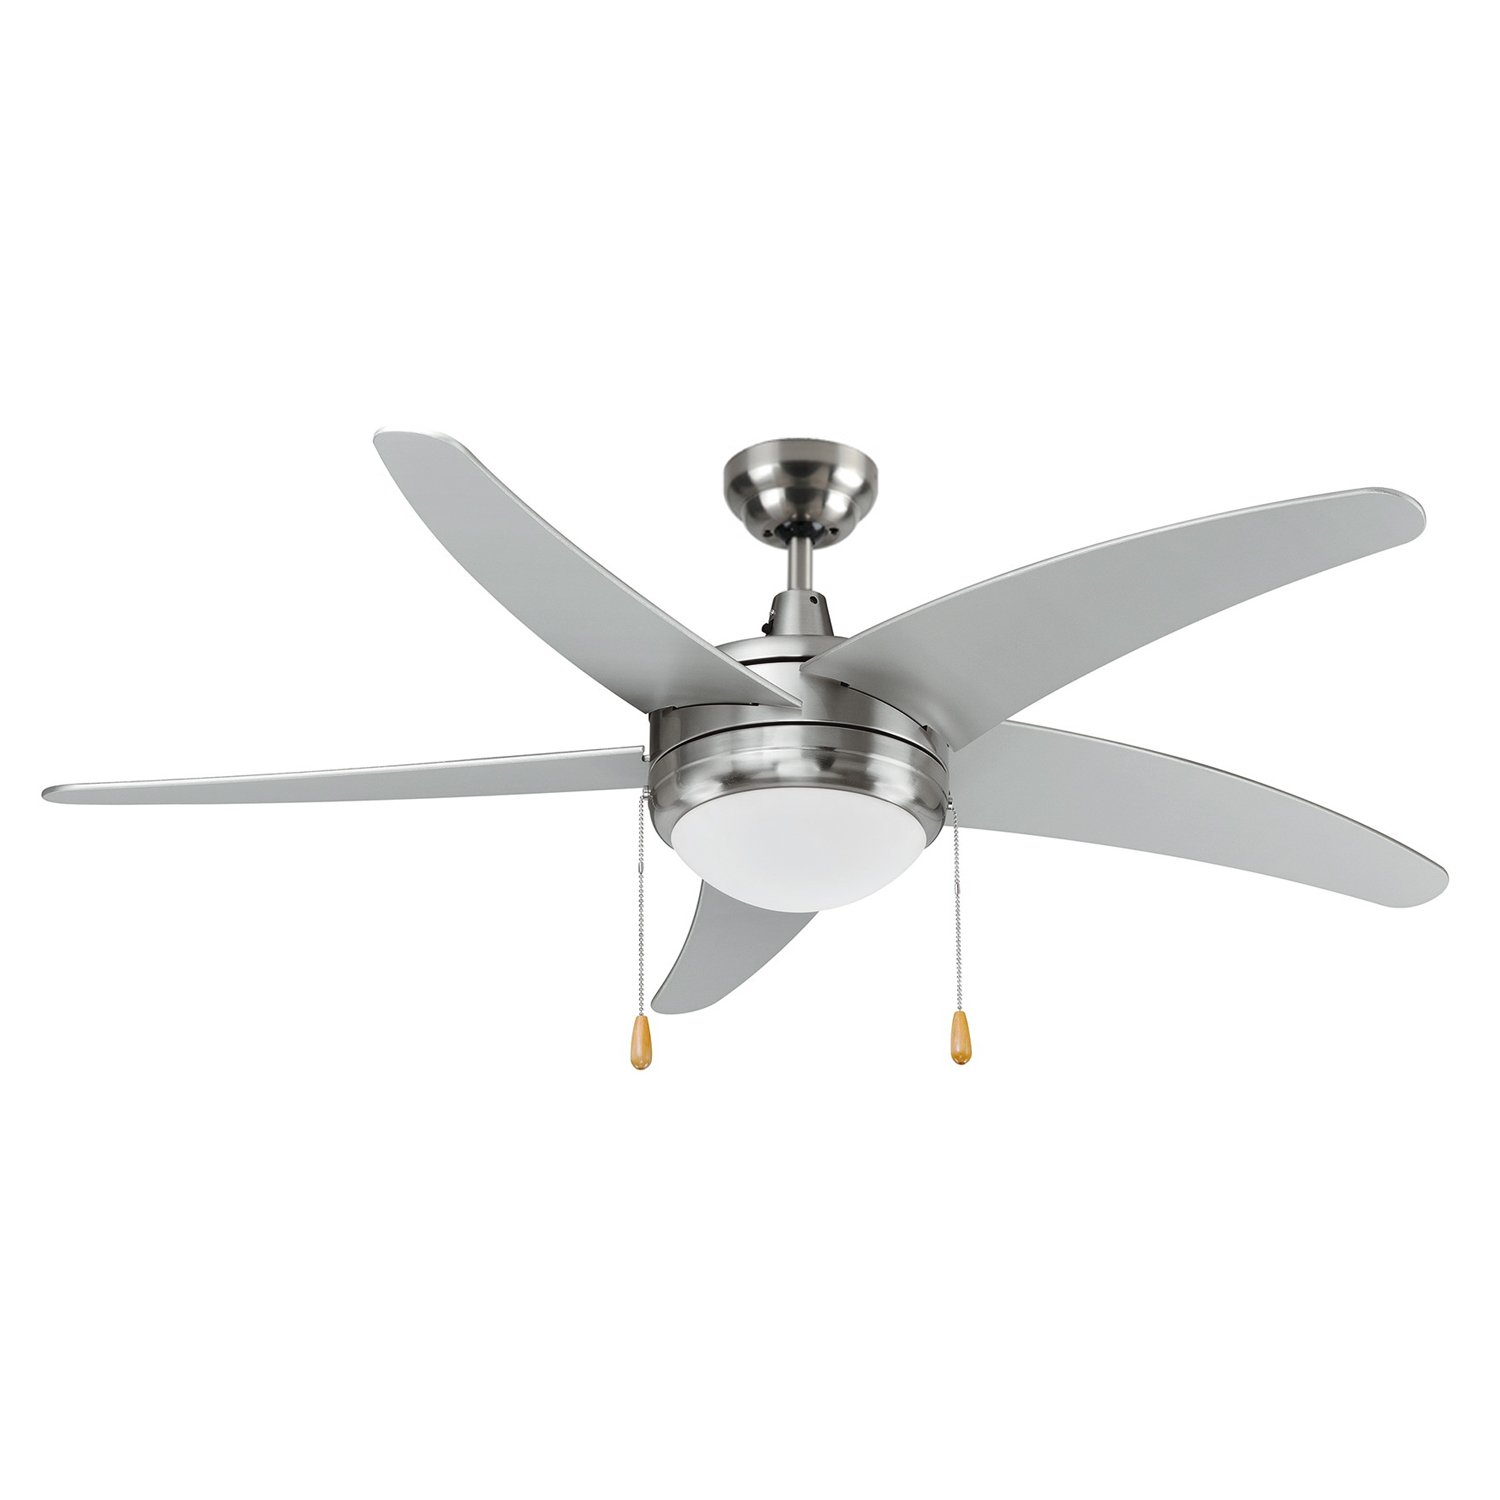 LB92103 LED Ceiling Fan, 50-Inch 5 Blade Curved, Brushed Nickel, 15W (65W equivalent), 3000K Warm White, 120° Beam Angle, 1000 Lumens, ETL & DLC Listed by Light Blue USA